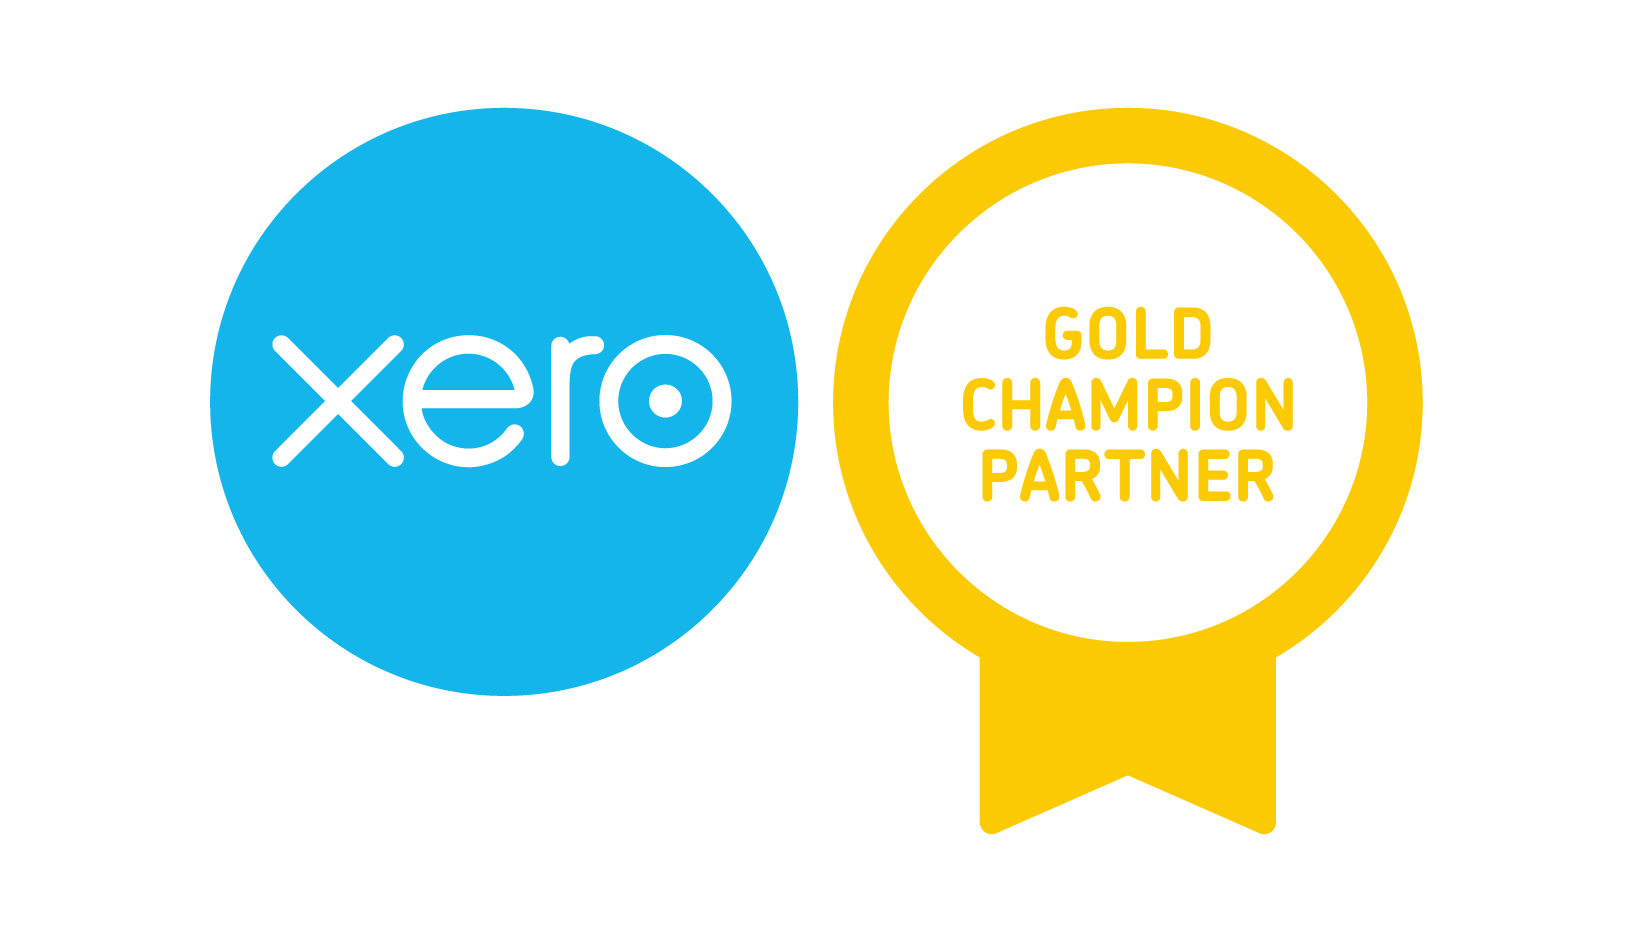 xero champion gold partner badge RGB